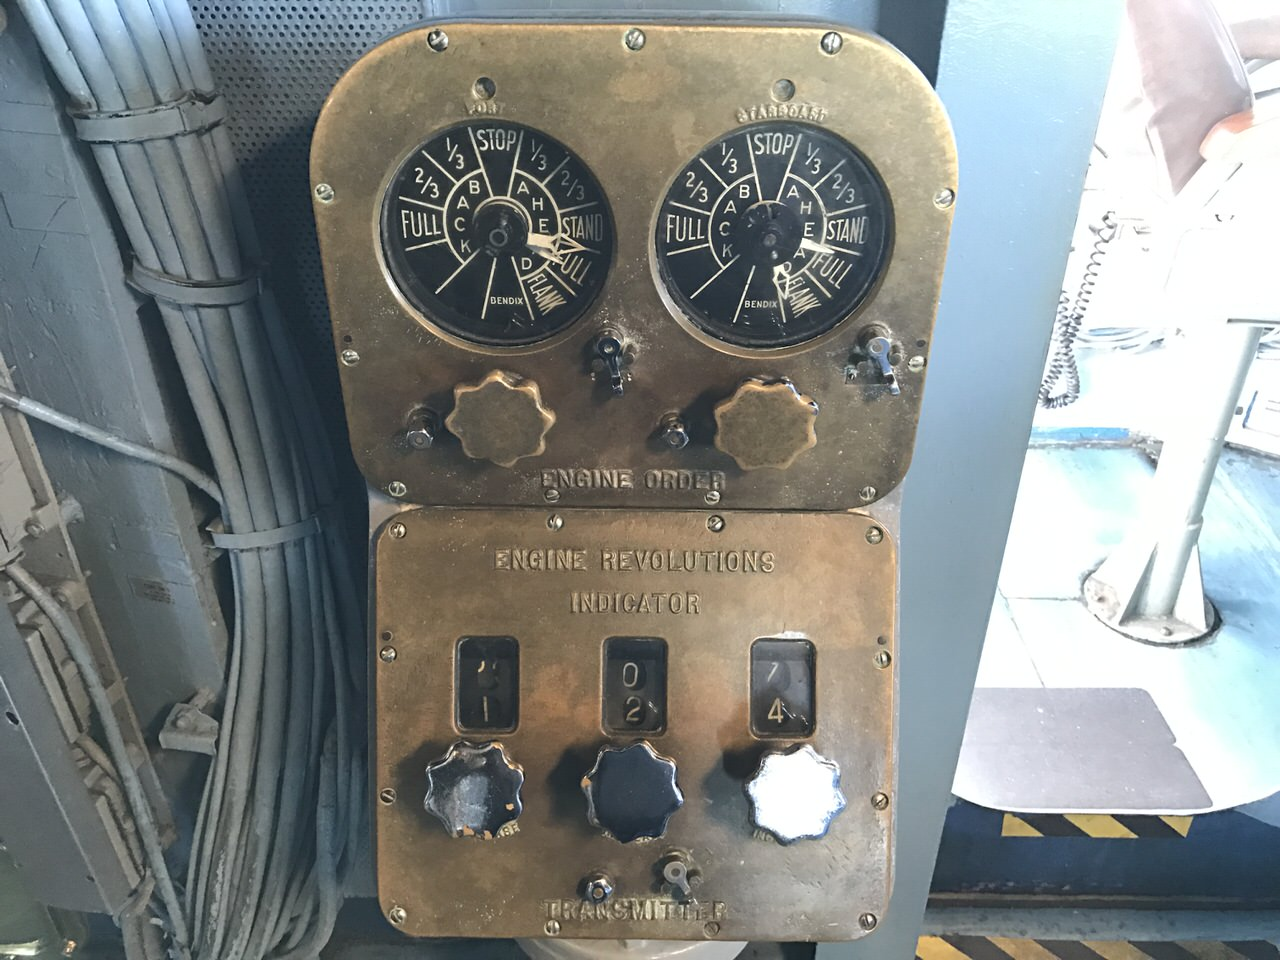 Uss midway museum 0584